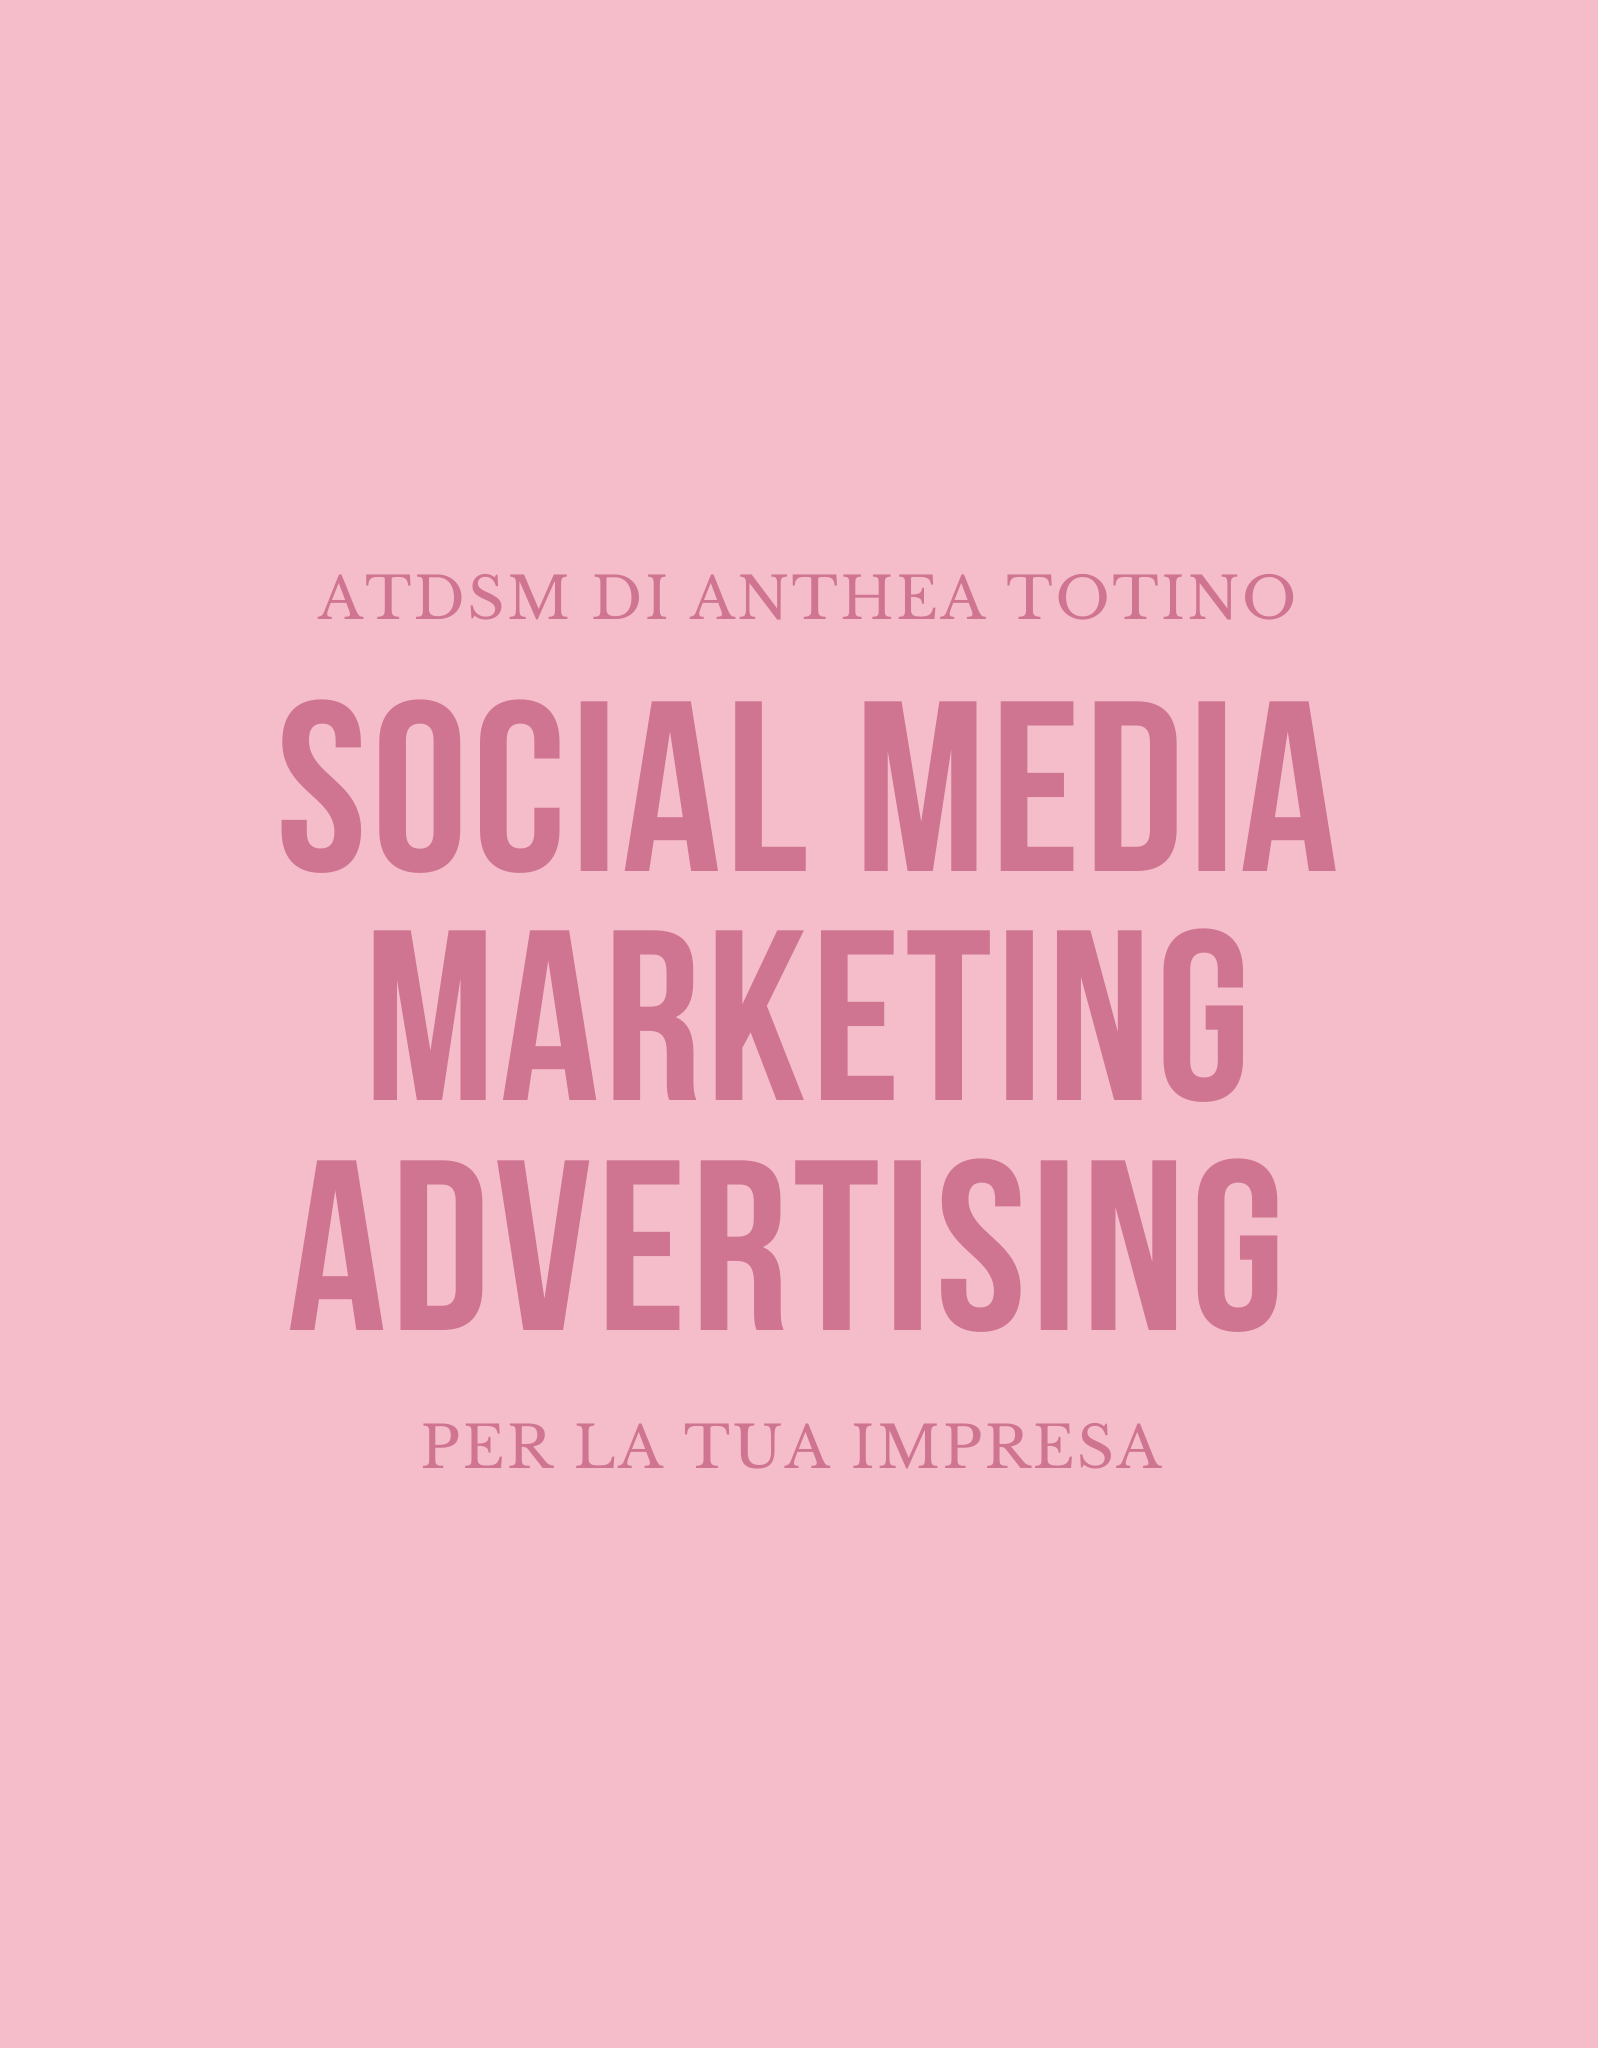 social-media-marketing-per-la-tua-impresa-atdsm